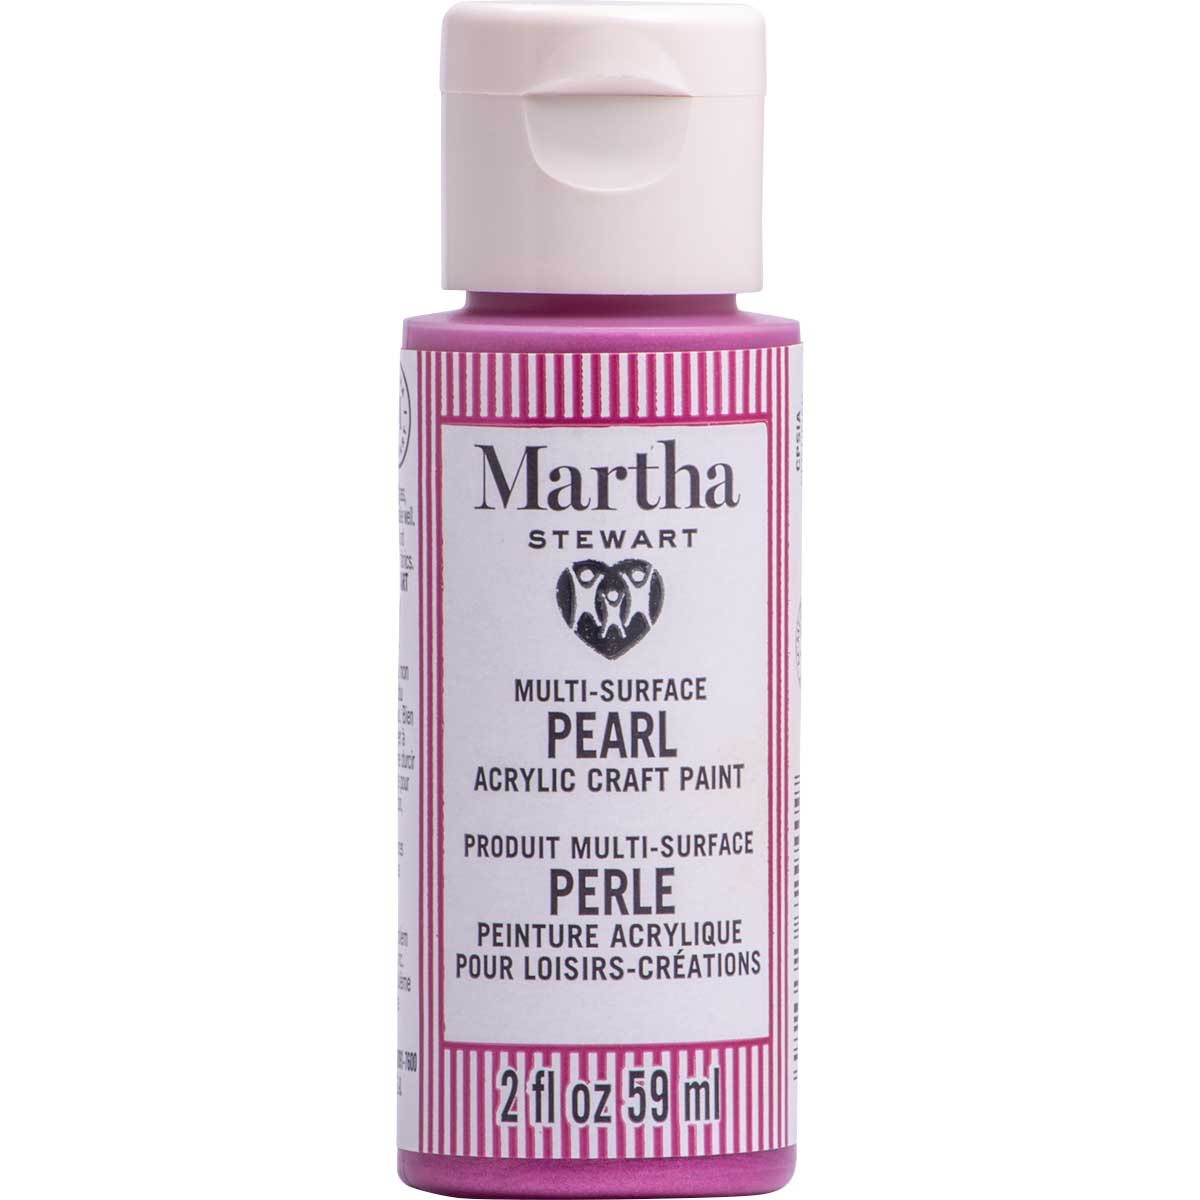 Martha Stewart ® Multi-Surface Pearl Acrylic Craft Paint CPSIA - Wisteria, 2 oz. - 72940